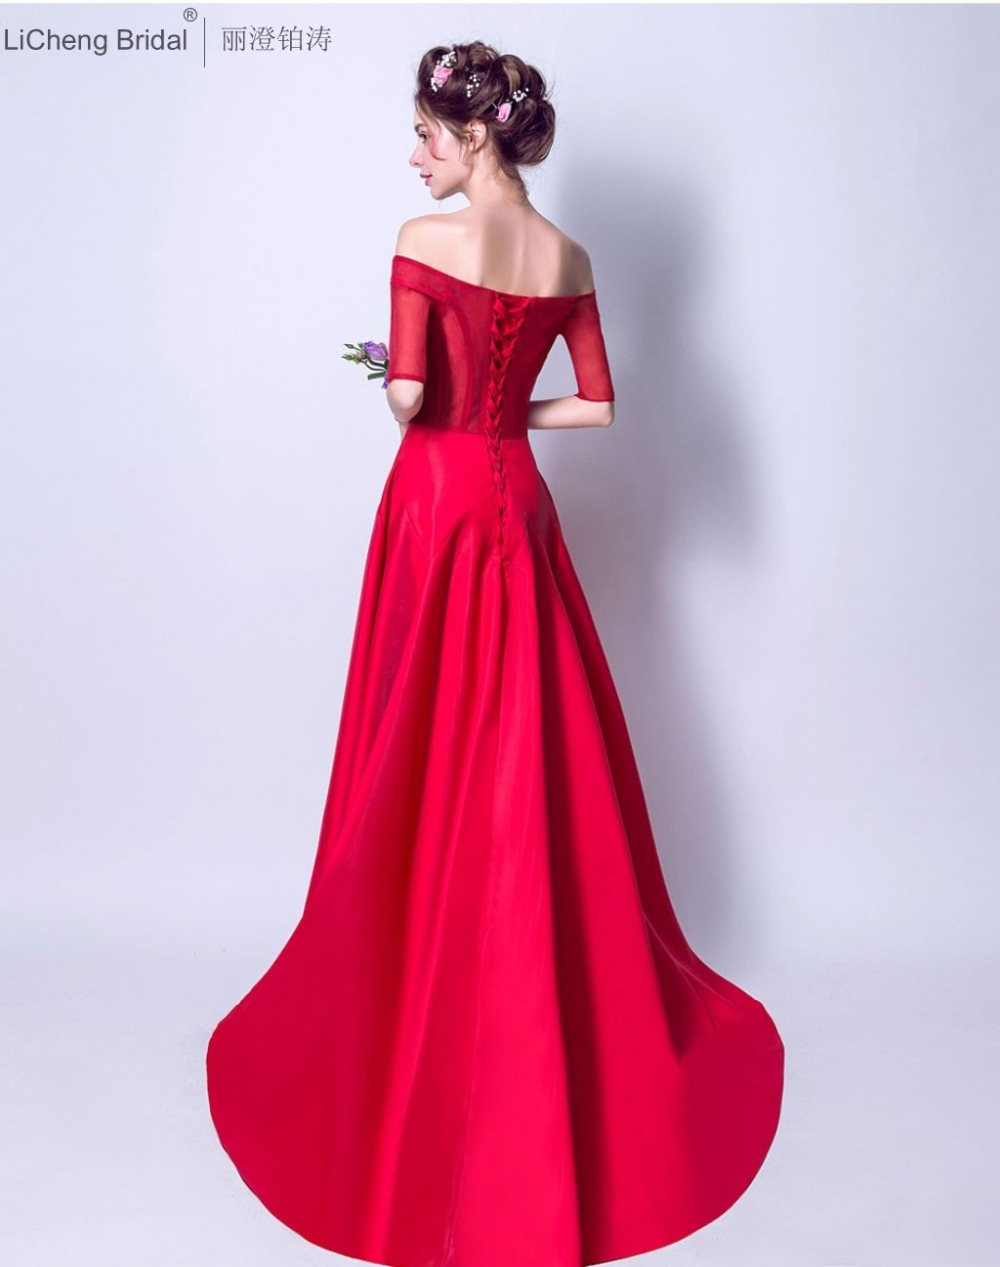 Aliexpress buy fast shipping red bridesmaid dress long aliexpress buy fast shipping red bridesmaid dress long beaded appliques women dress off shuolder party dresses 2017 robe de soiree from reliable red ombrellifo Images